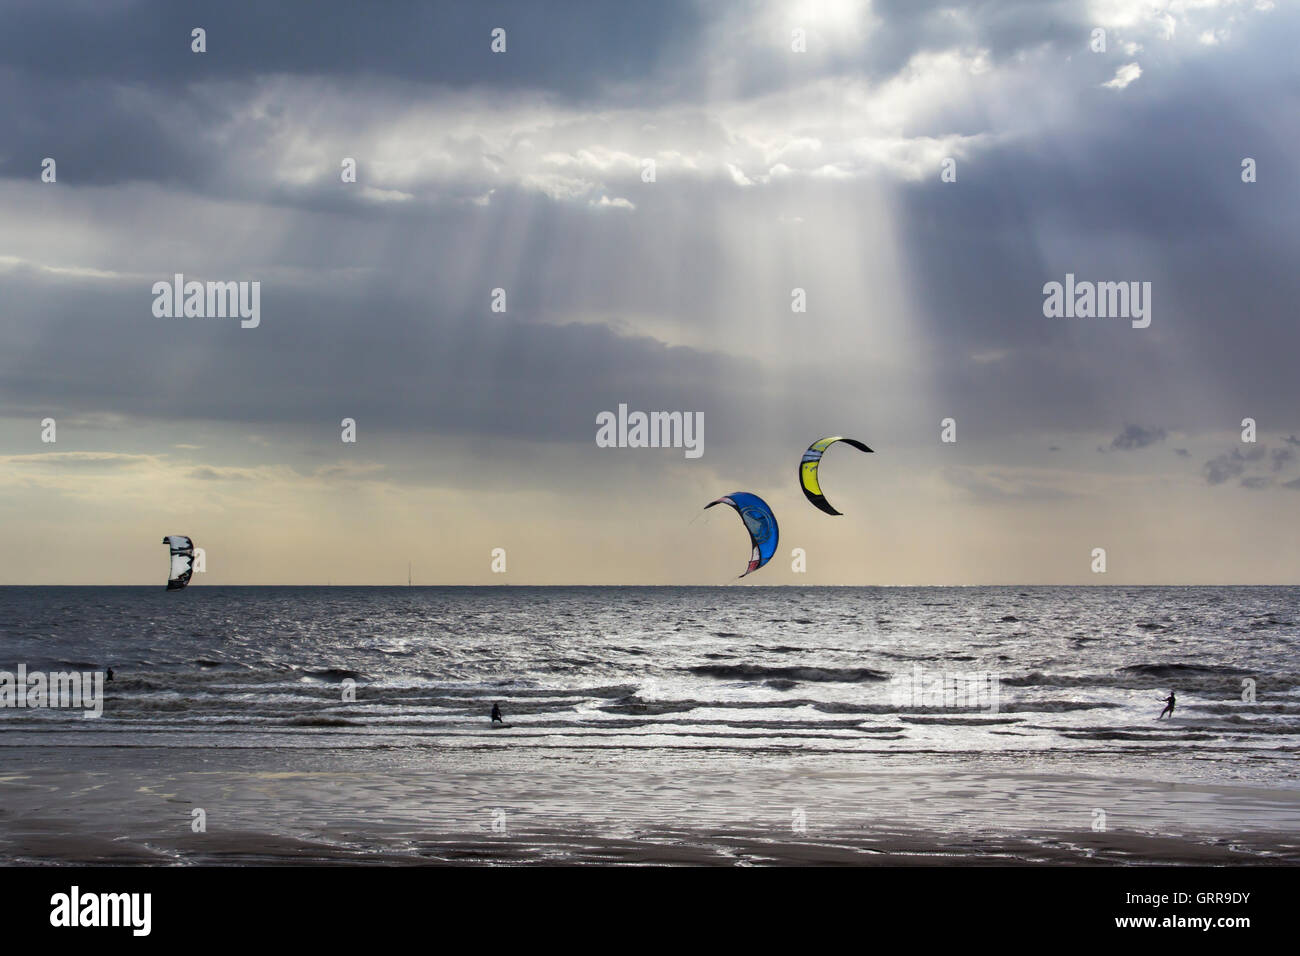 three-kiteboarders-engaging-in-their-ext